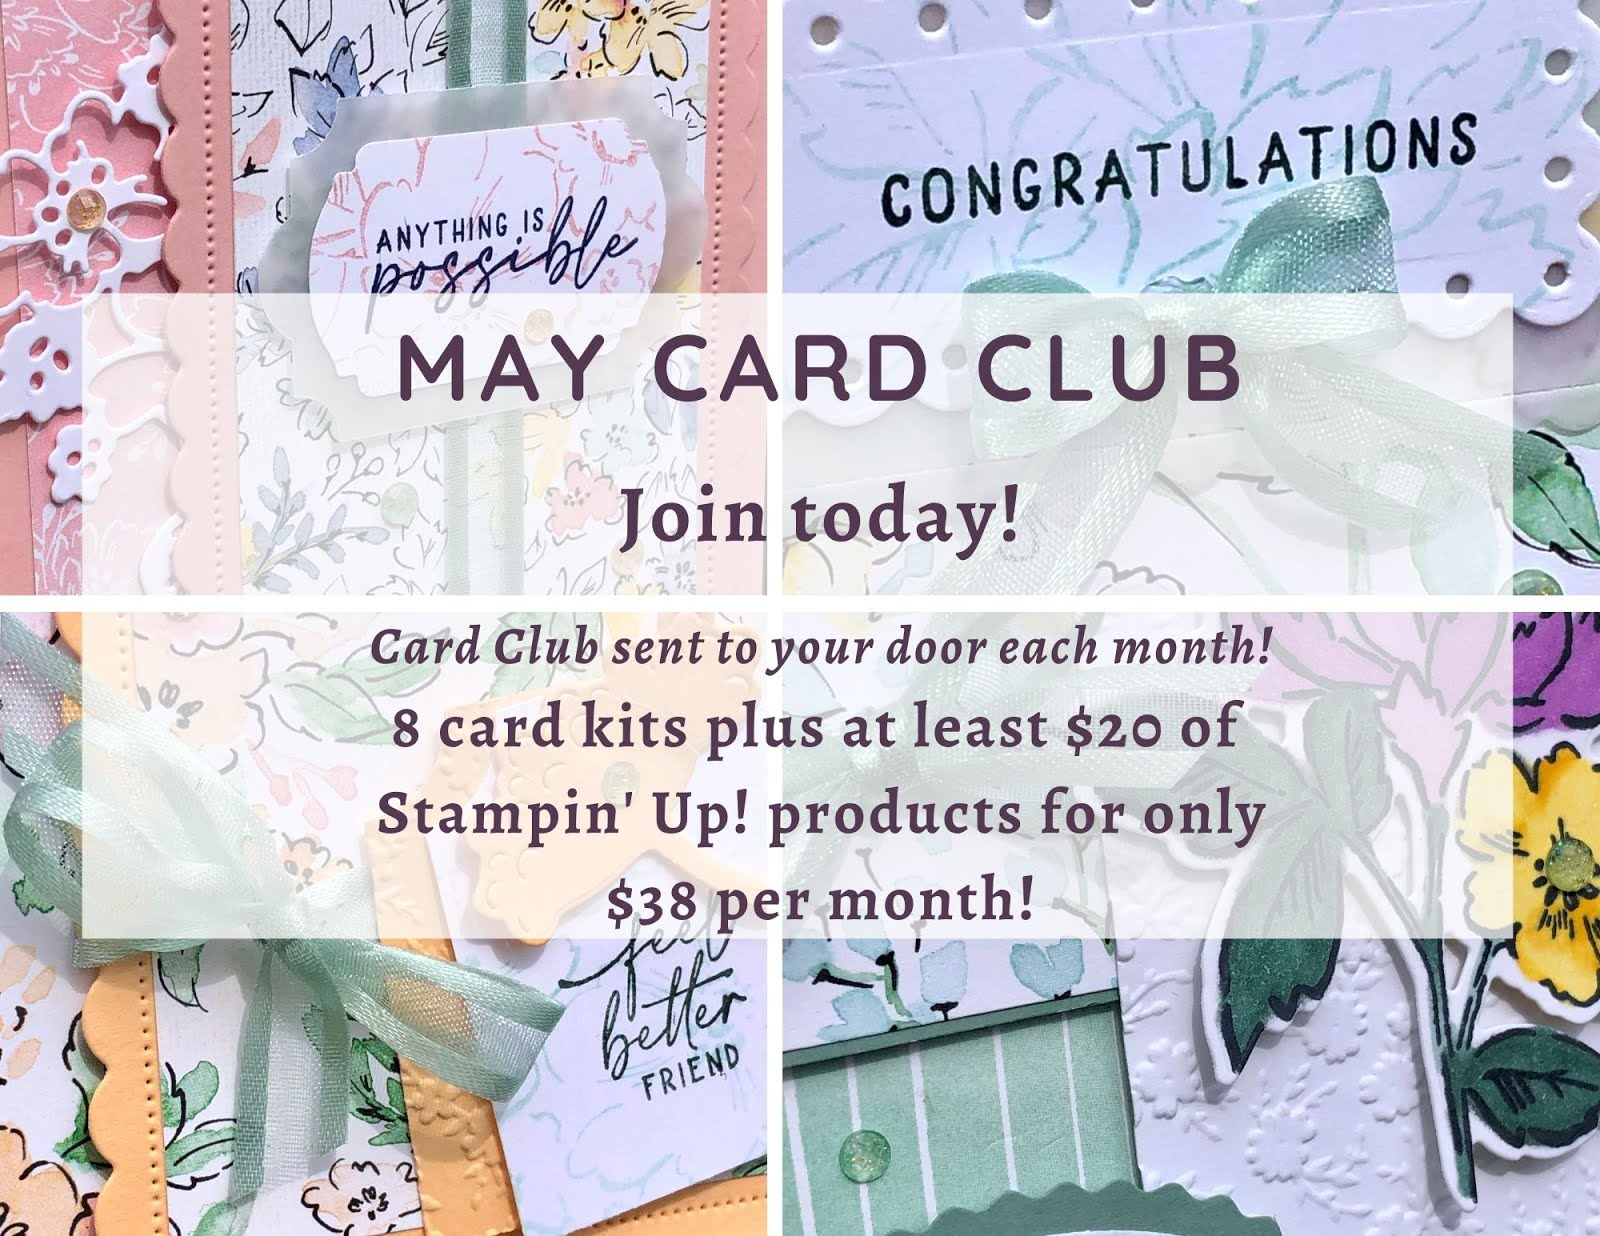 May Card Club